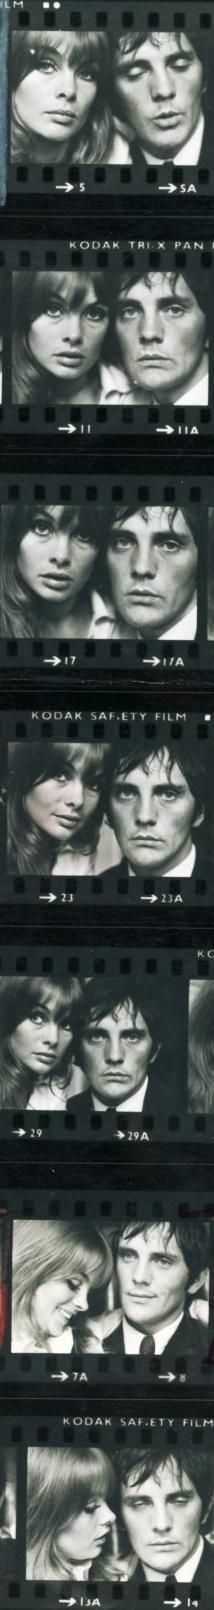 Jean Shrimpton & Terrence Stamp by David Bailey